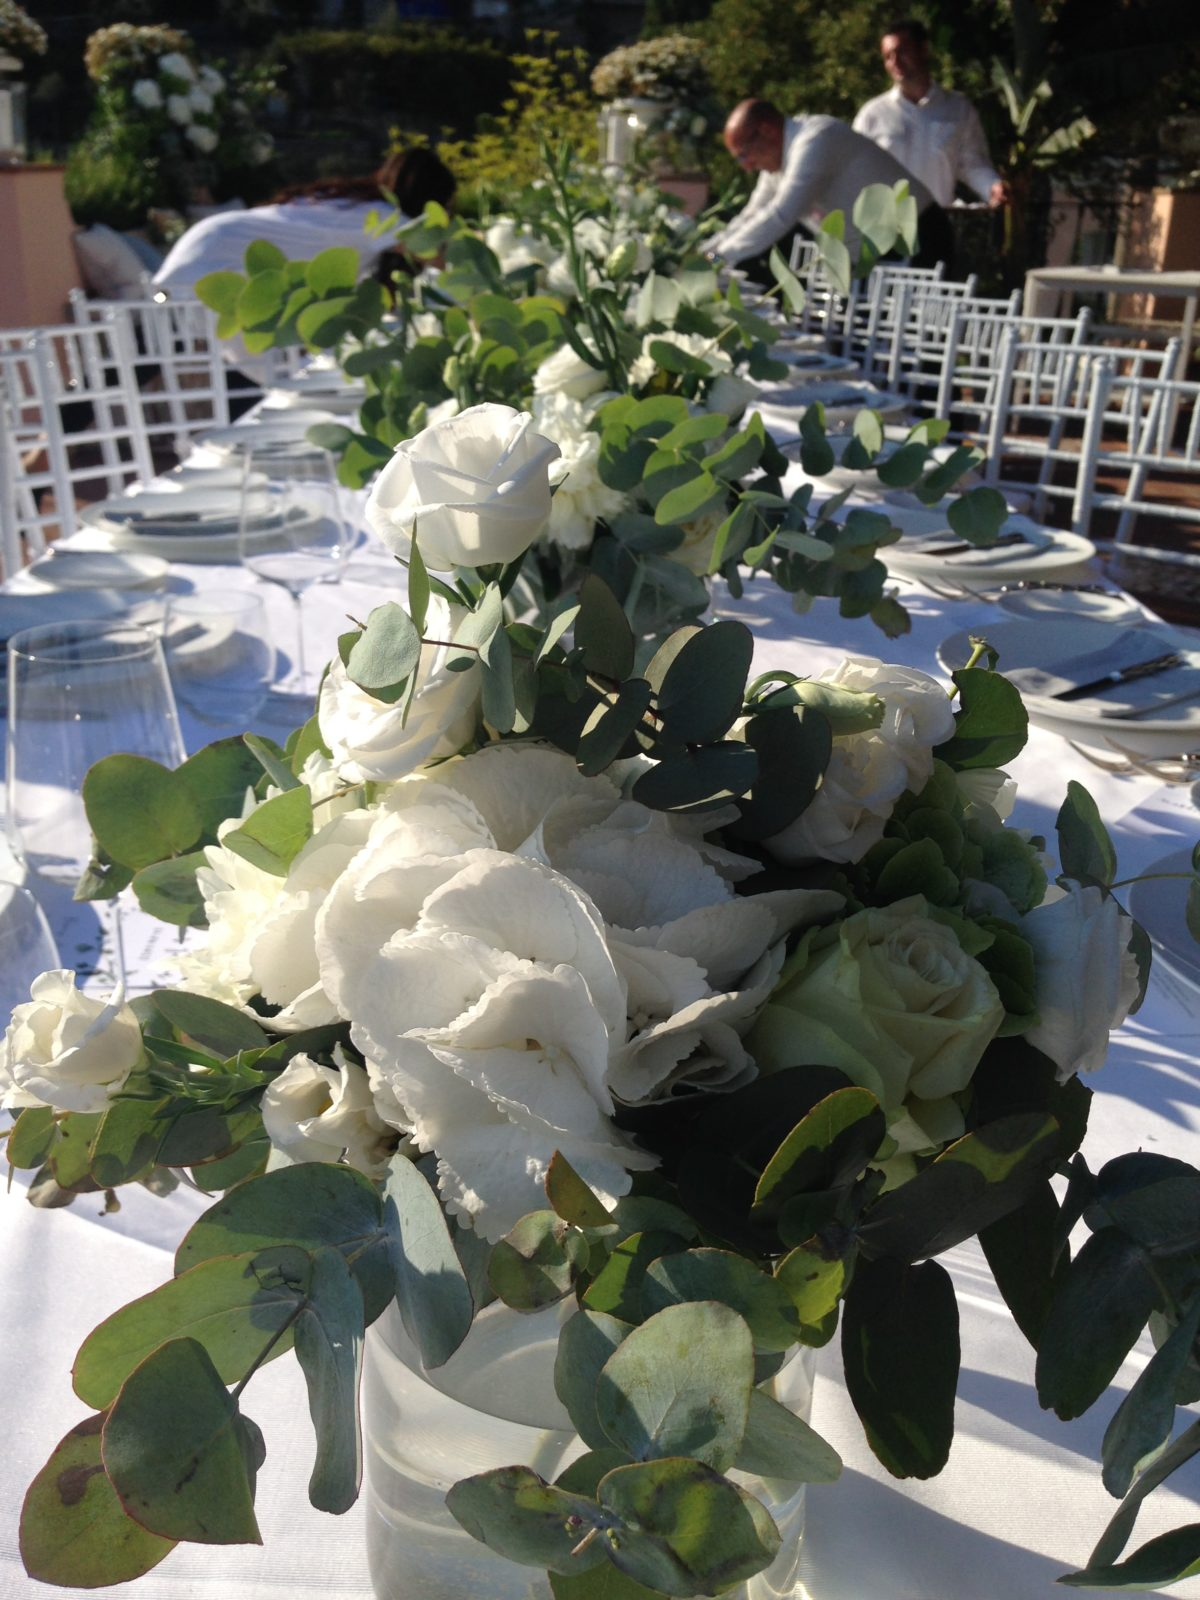 Laura and Jarrod fresh flowers wedding table decorations